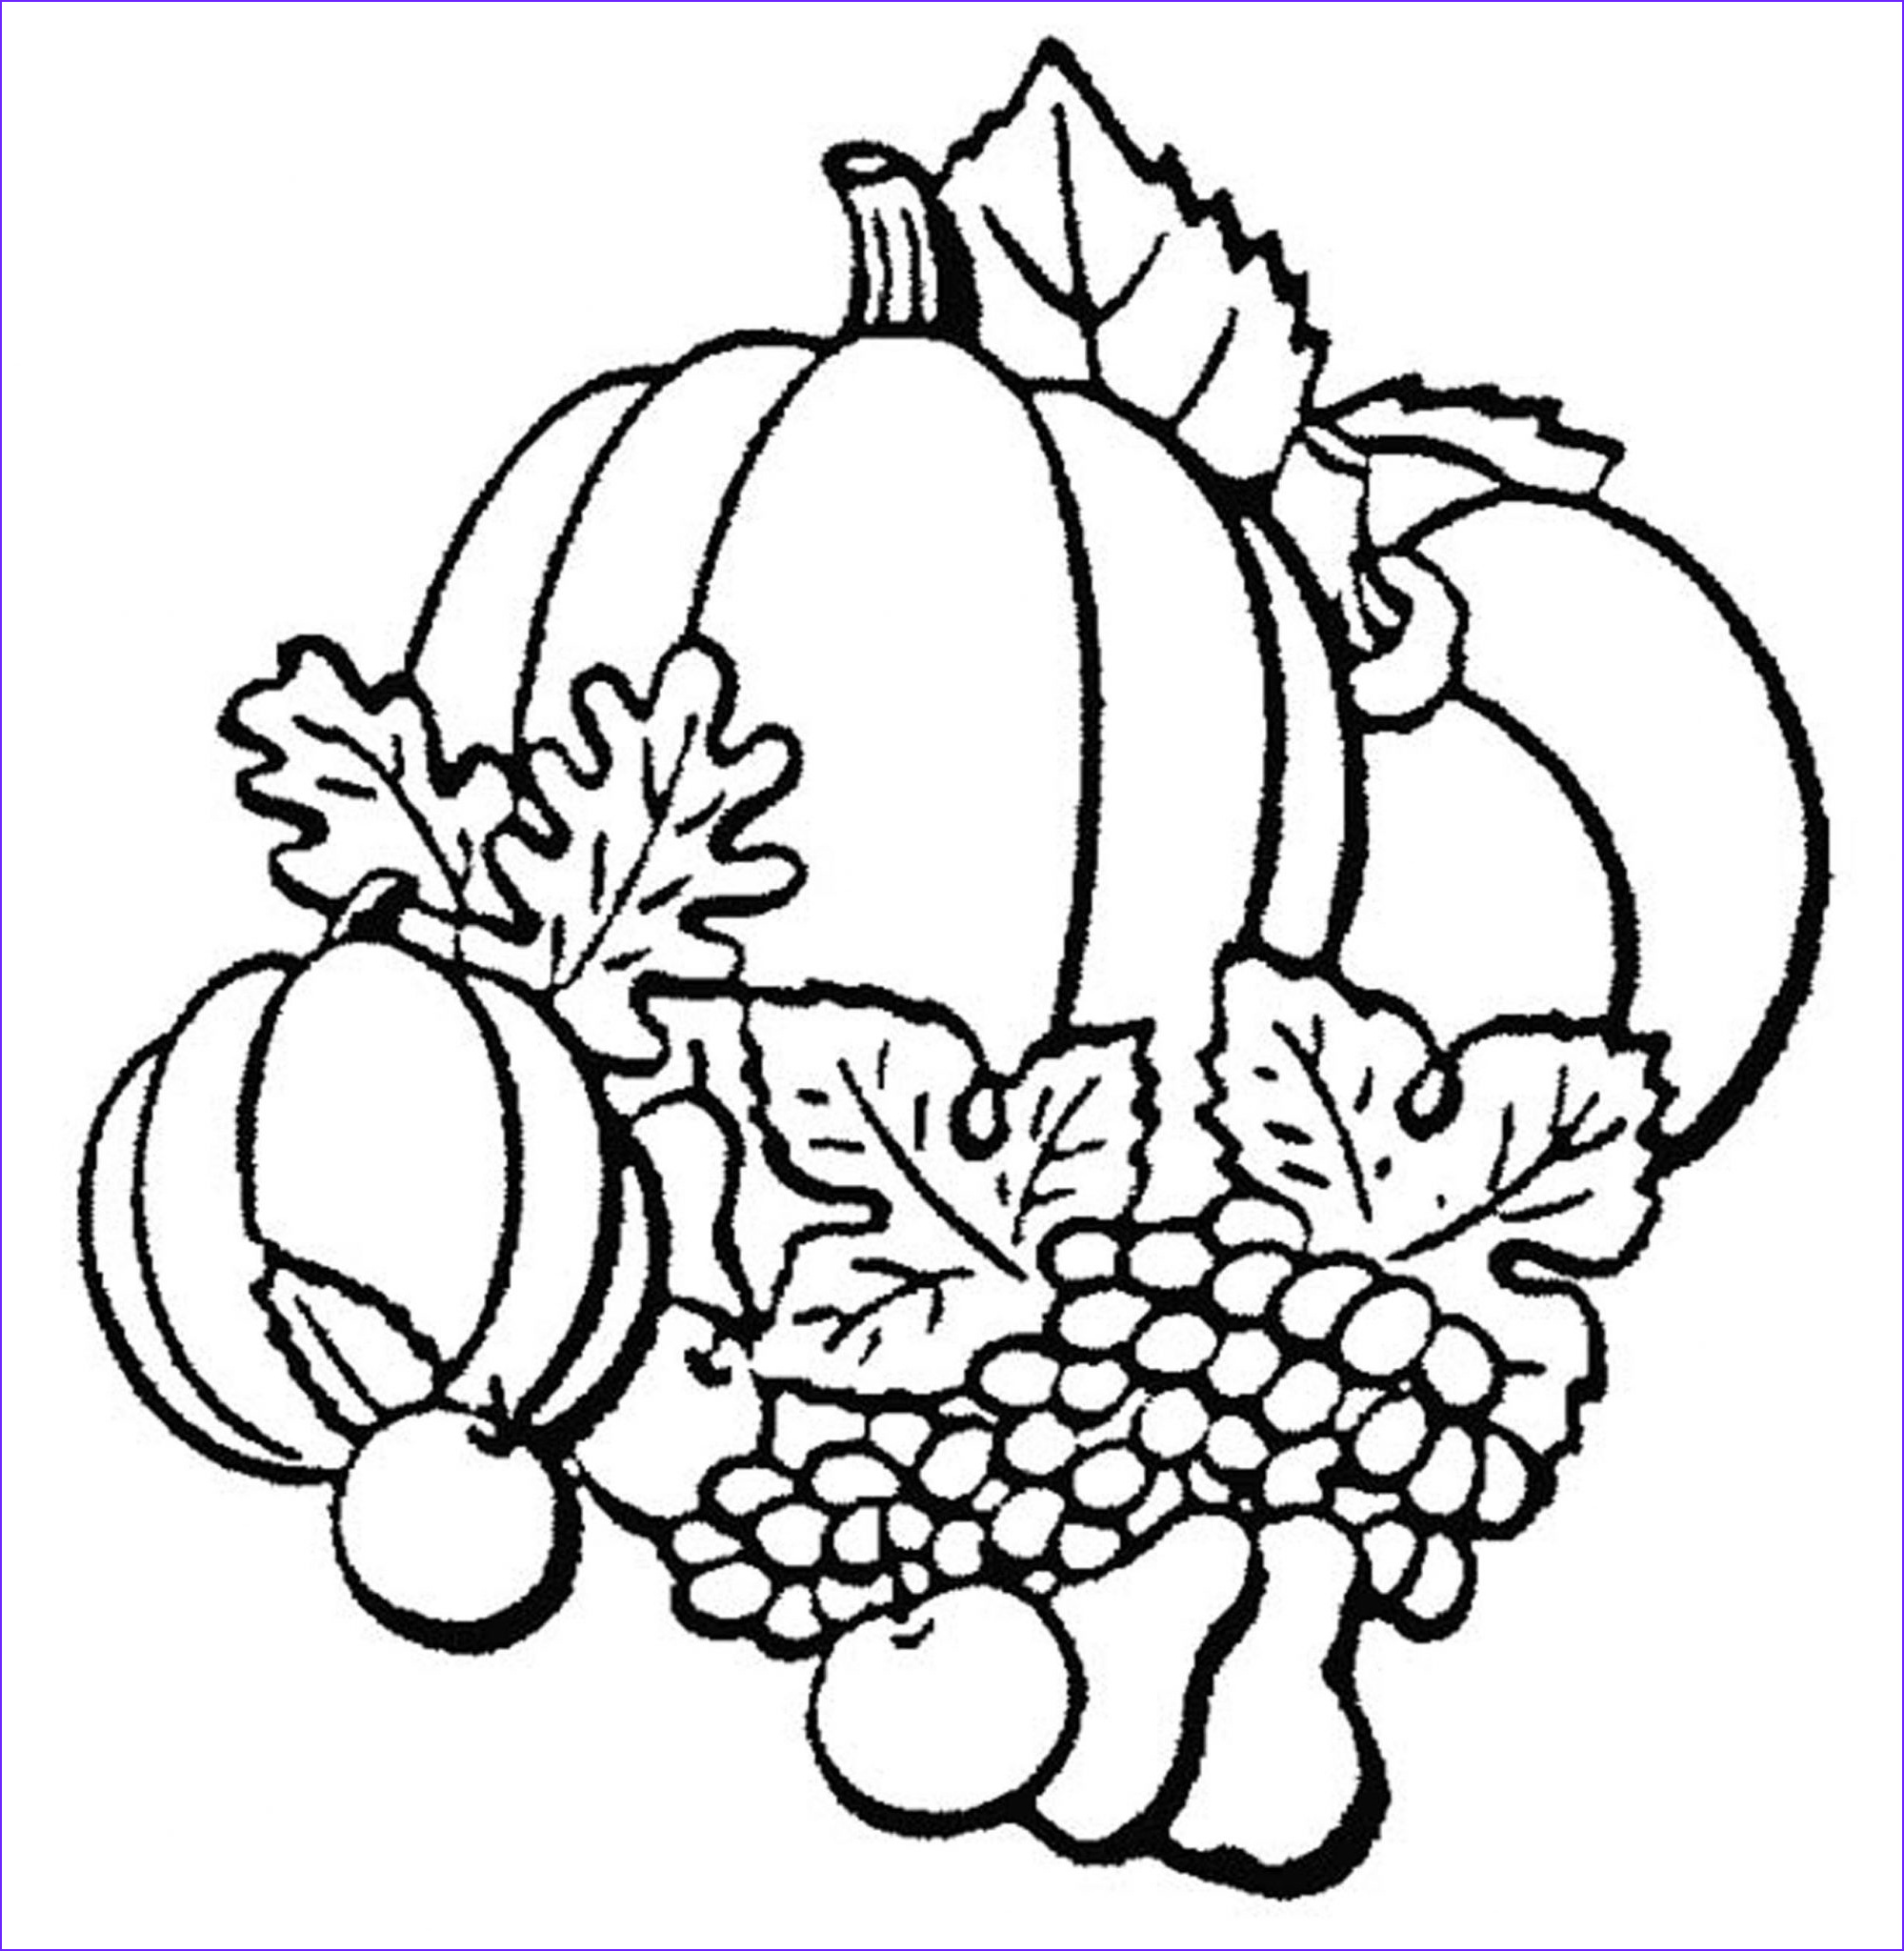 4th Grade Coloring Pages Best Of Collection 4th Grade Coloring Pages